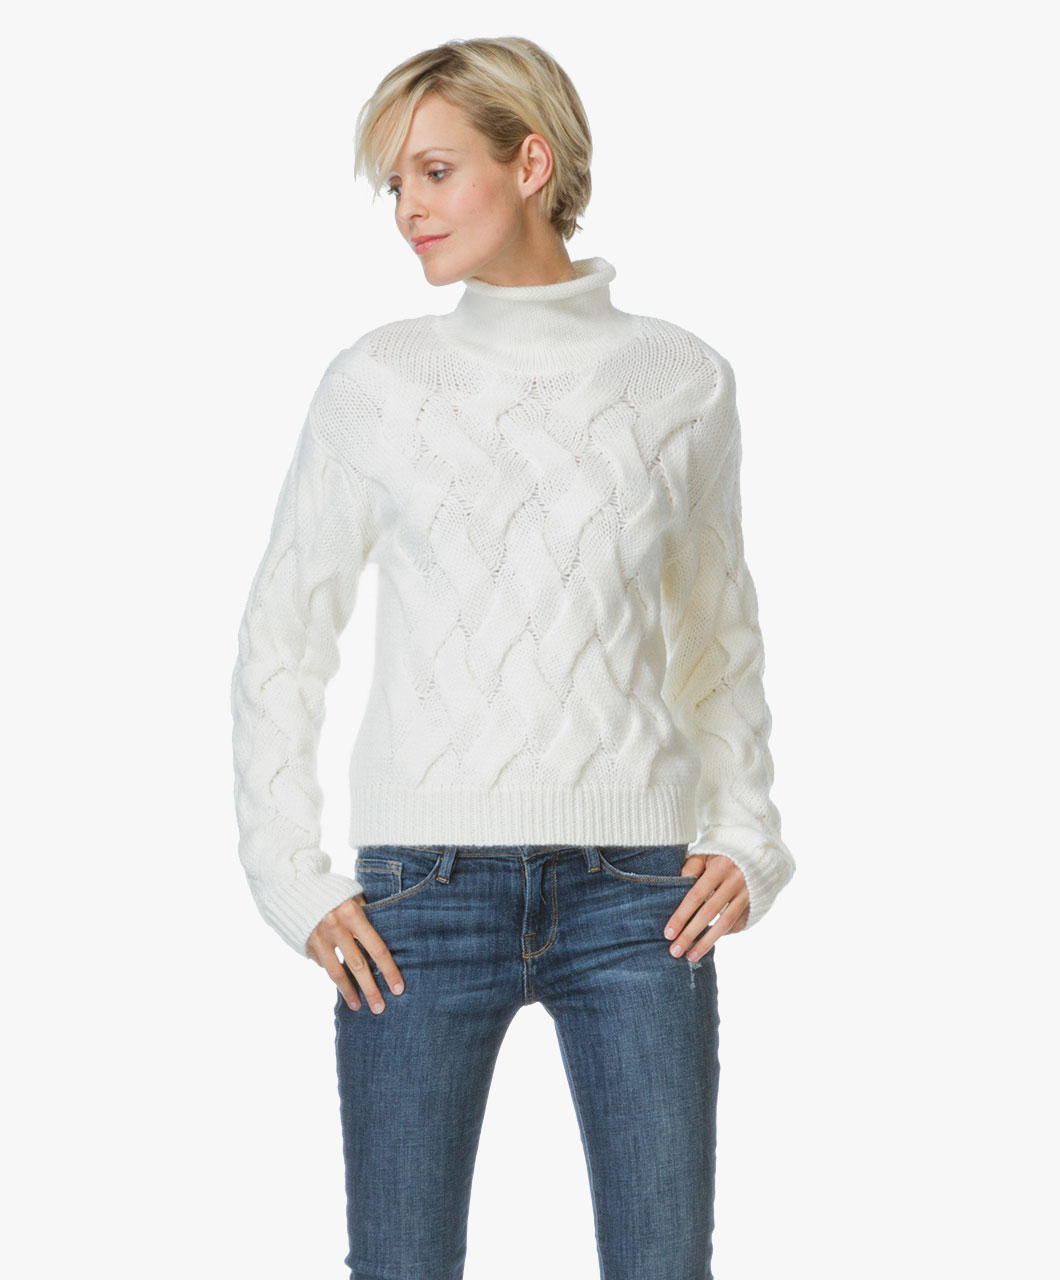 160906 Filippa K Cable Knit Off White 03